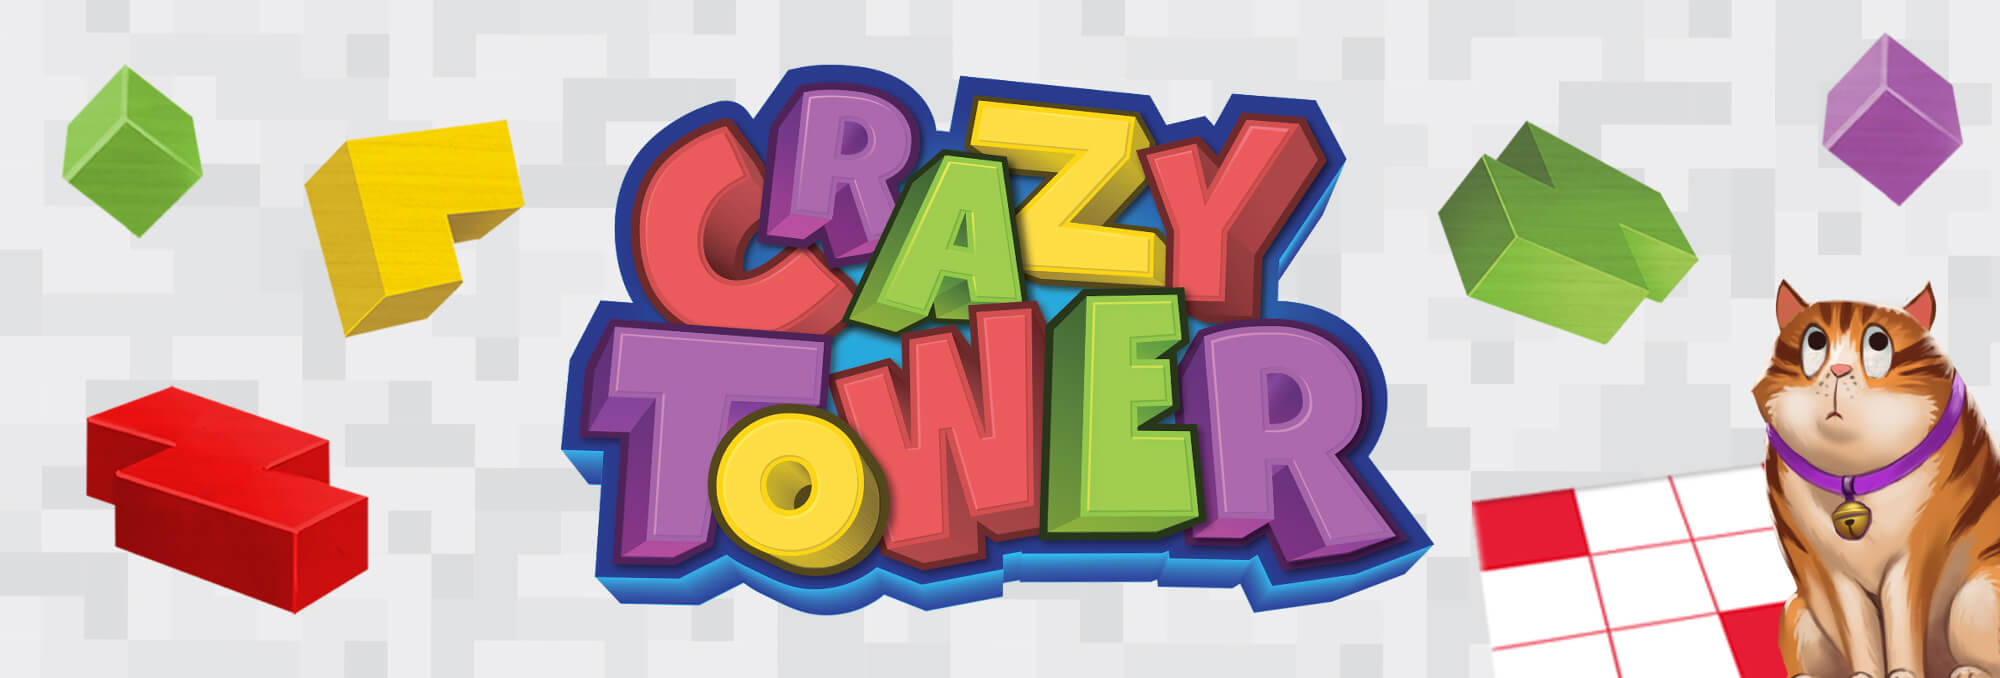 Slide-Crazy_tower2